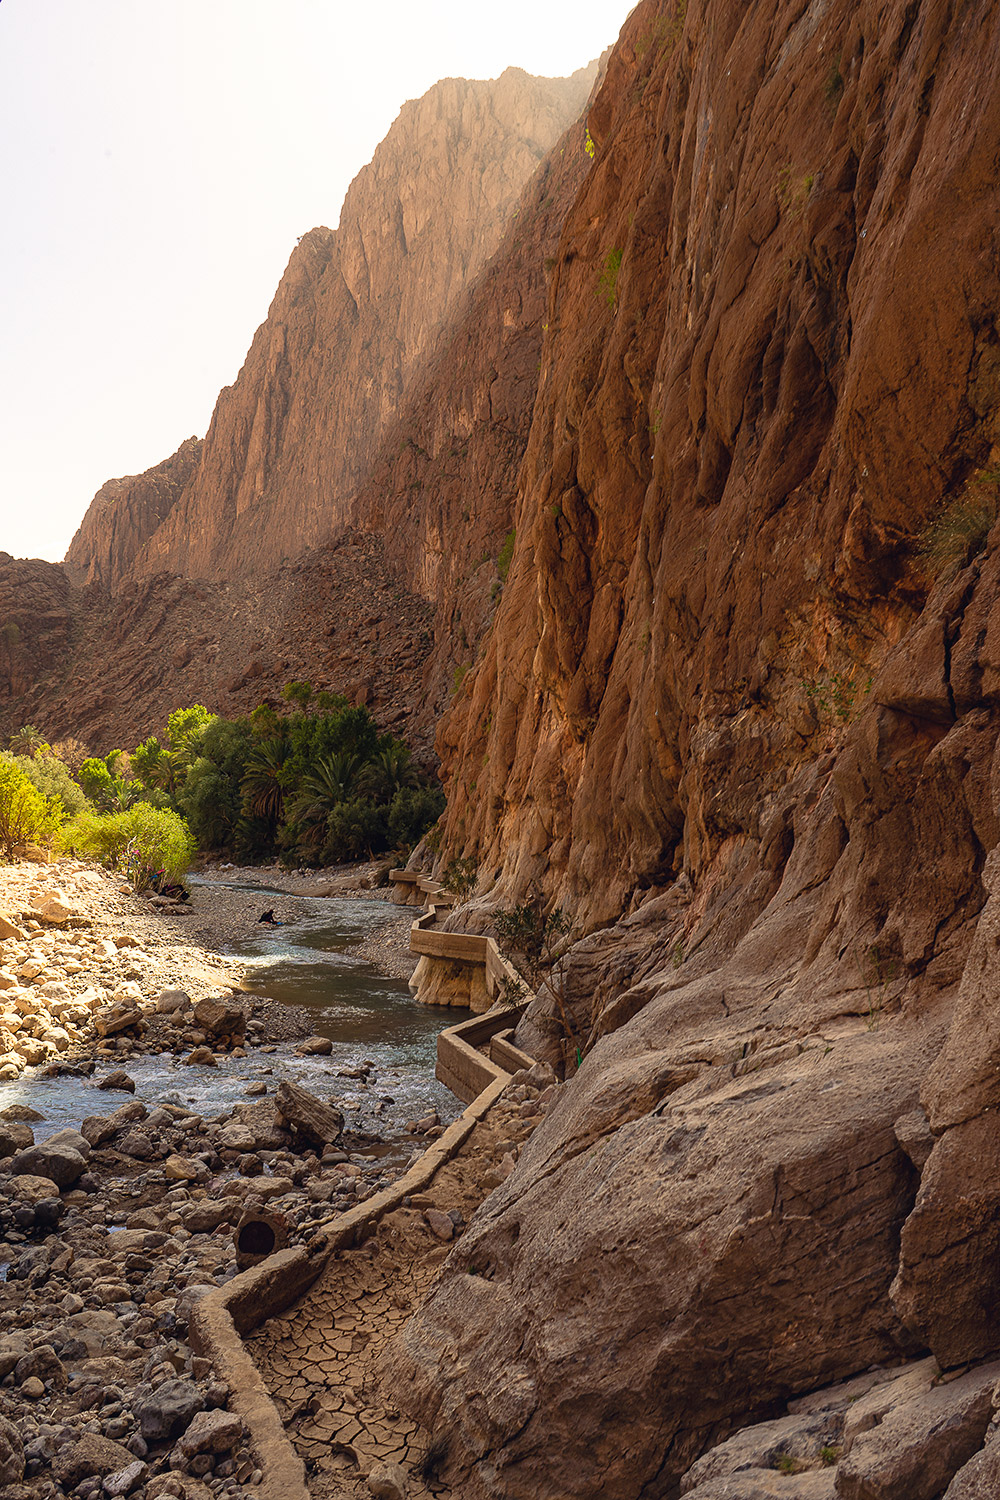 The sun getting into one of the most stunning canyons in the world in Morocco